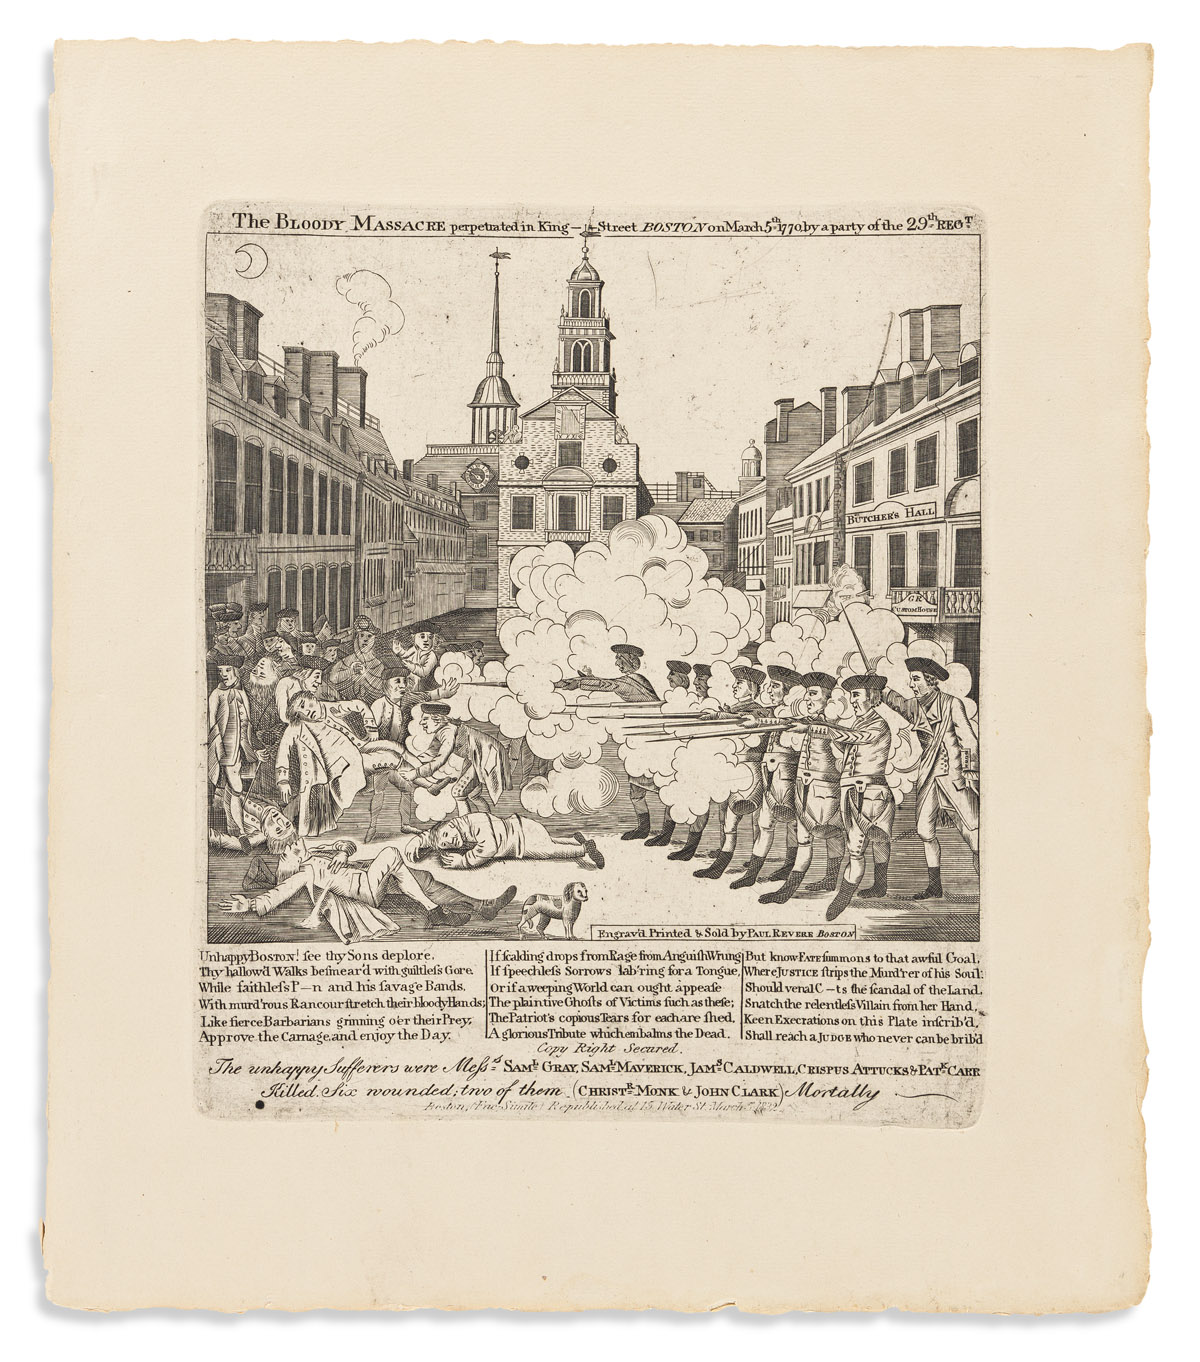 (AMERICAN REVOLUTION--PRELUDE.) [Stratton]; after Paul Revere. The Bloody Massacre Perpetrated in King-Street, Boston.